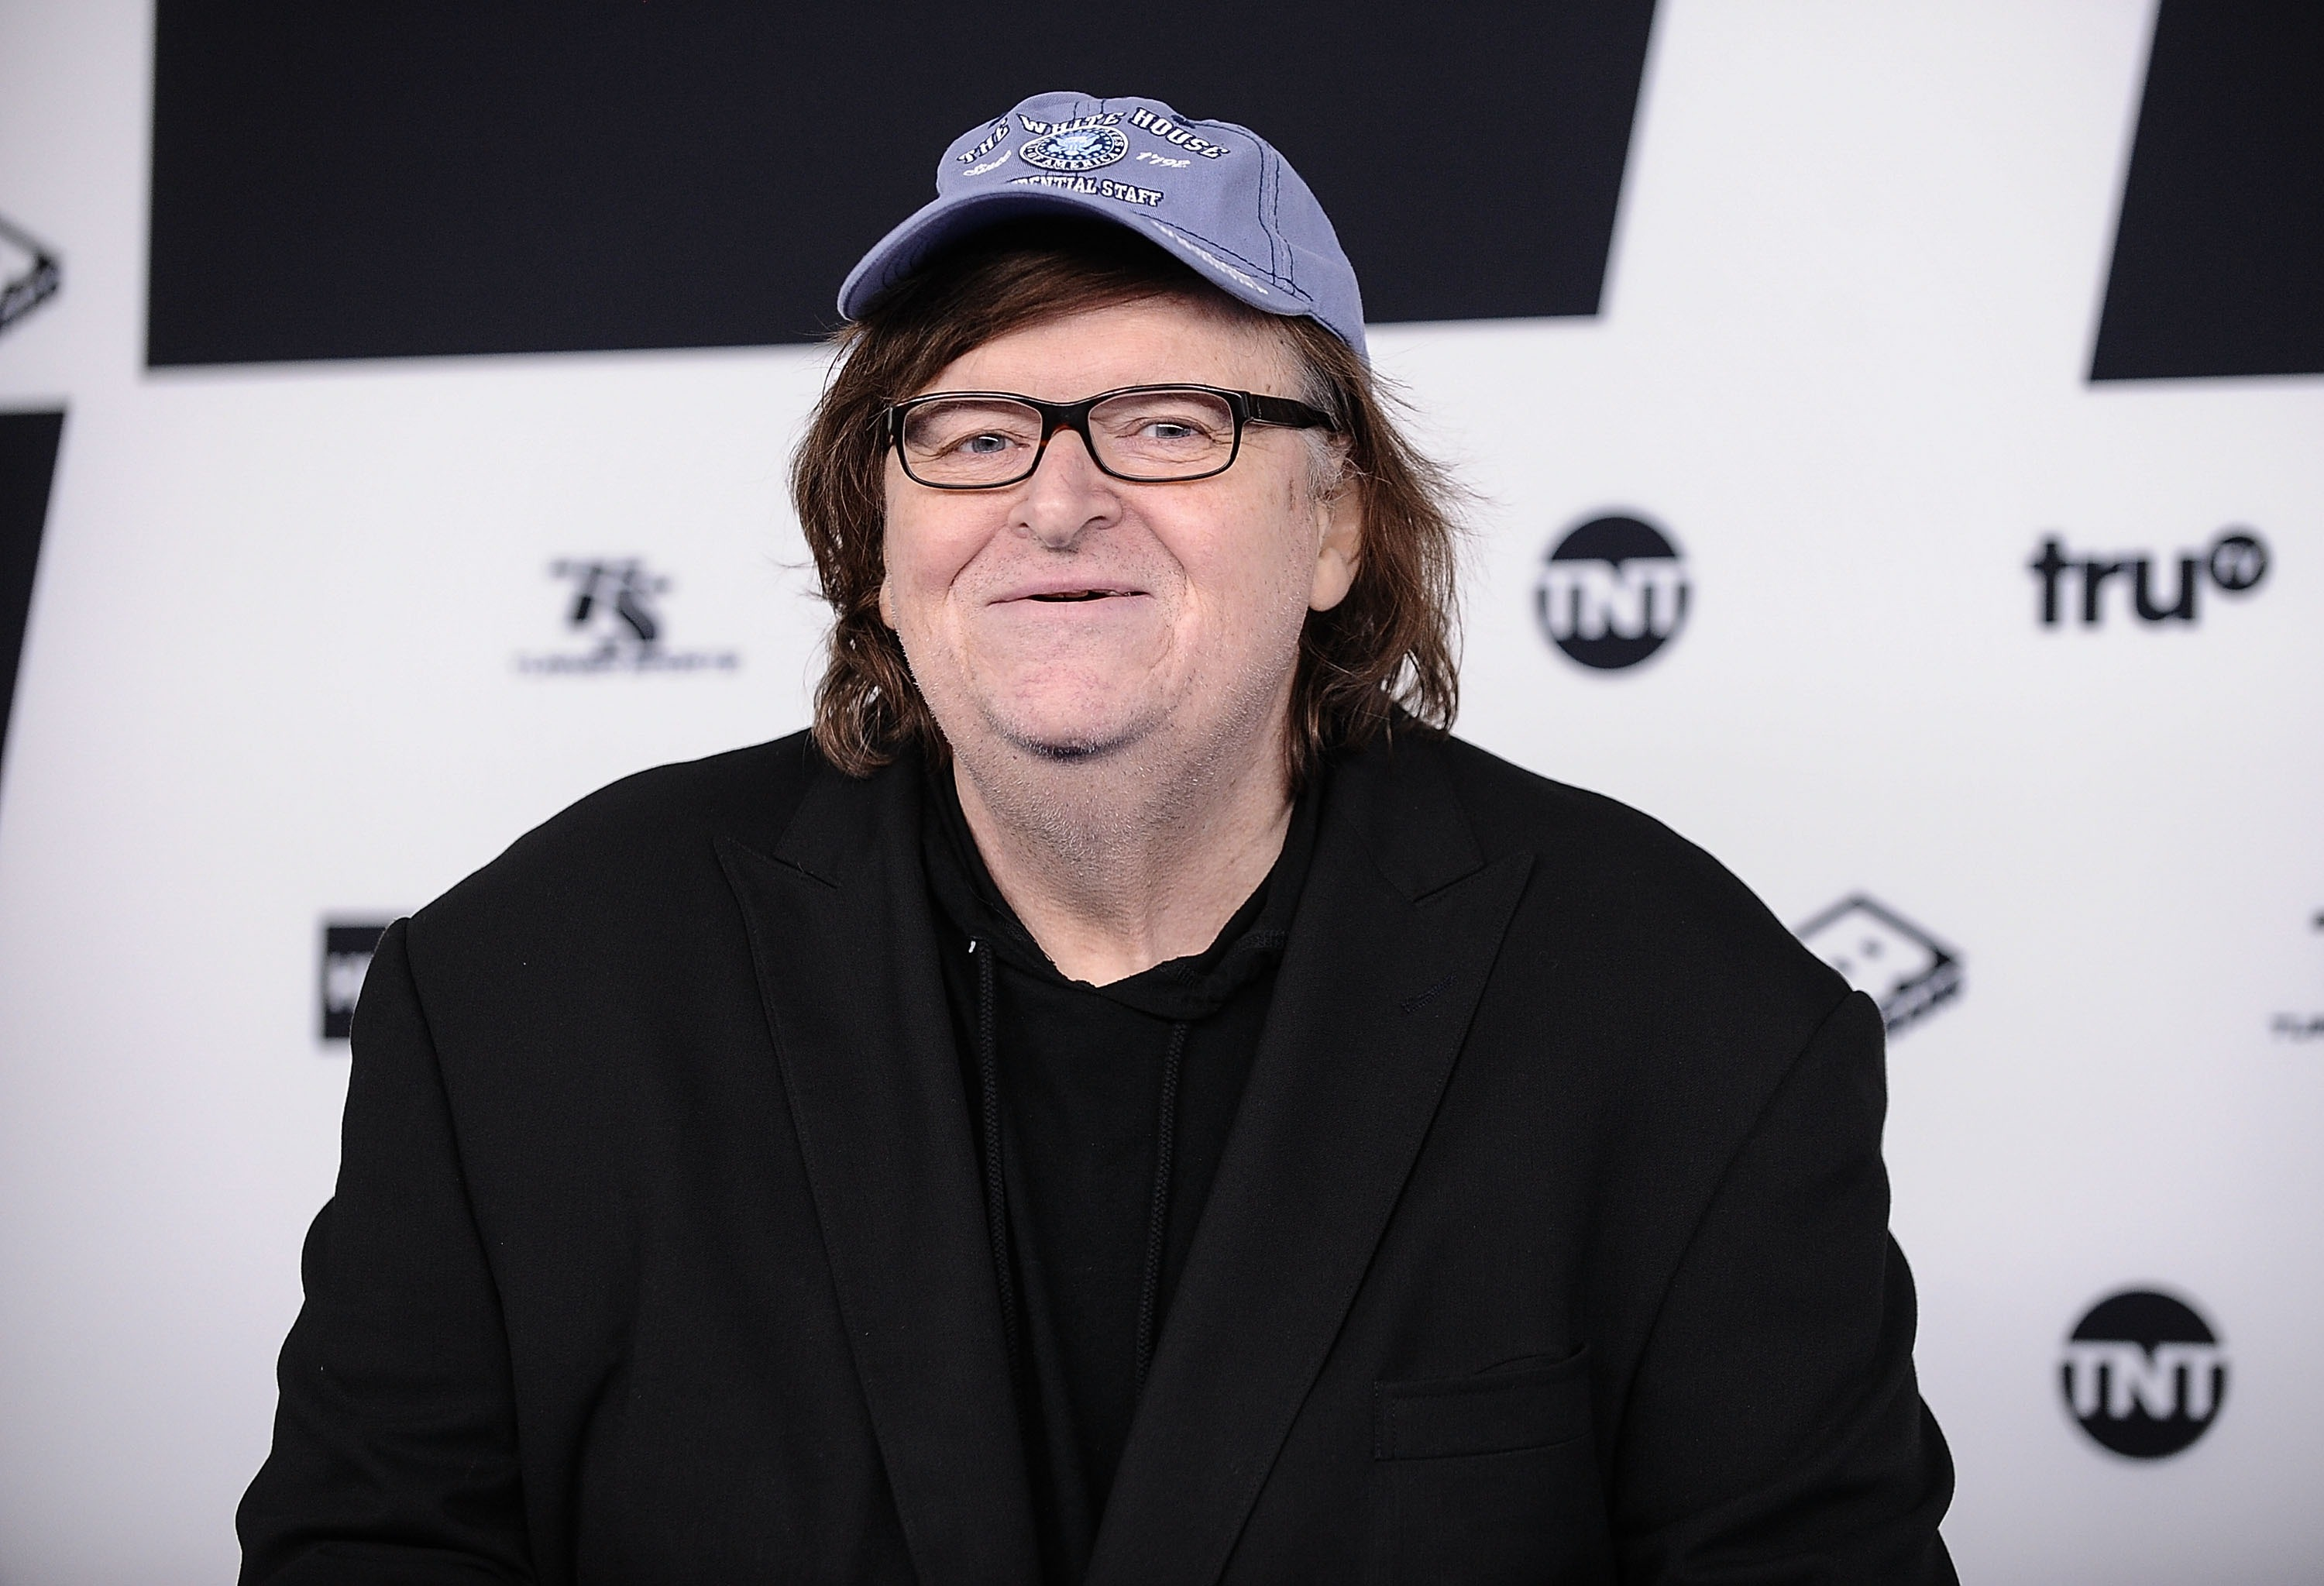 Michael Moore attends at Madison Square Garden in New York on May 17, 2017.